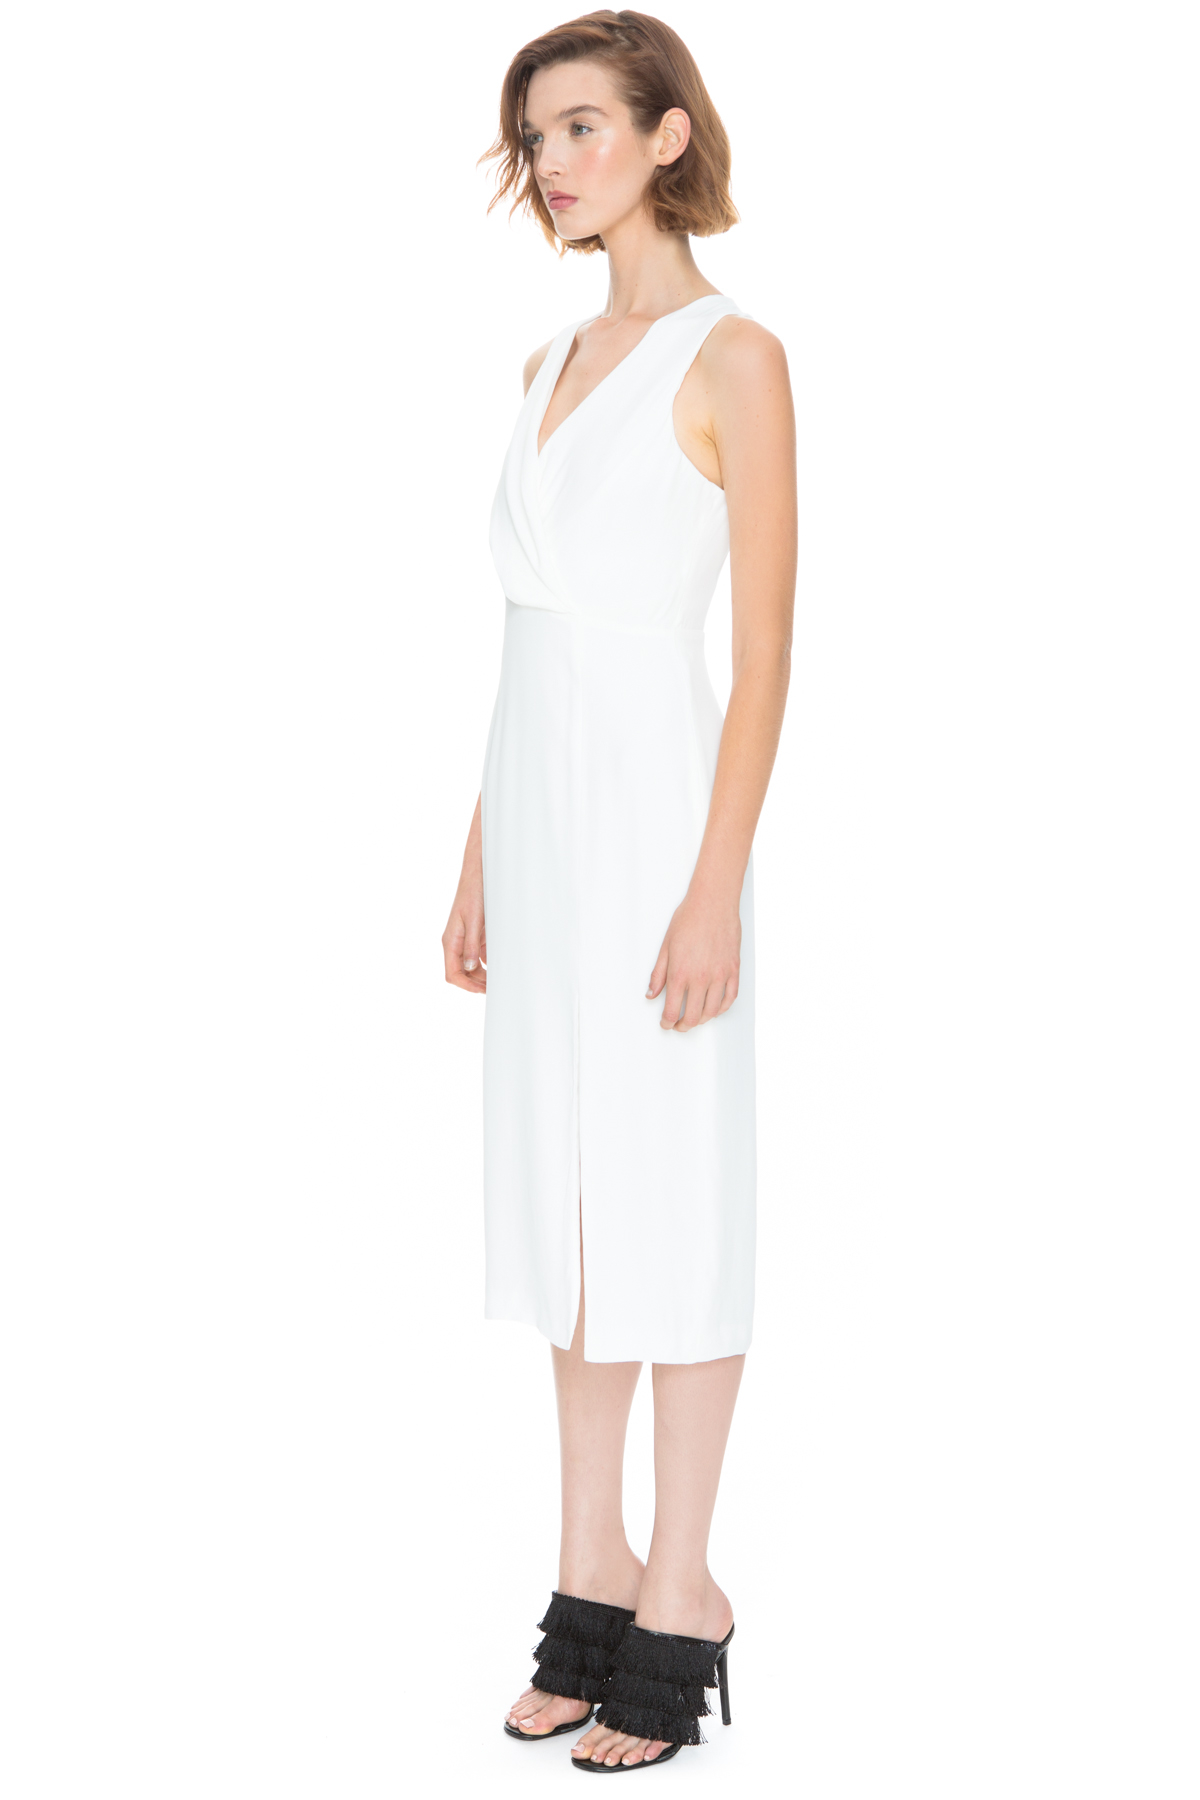 c meo collective bedroom wall short sleeve dress in white